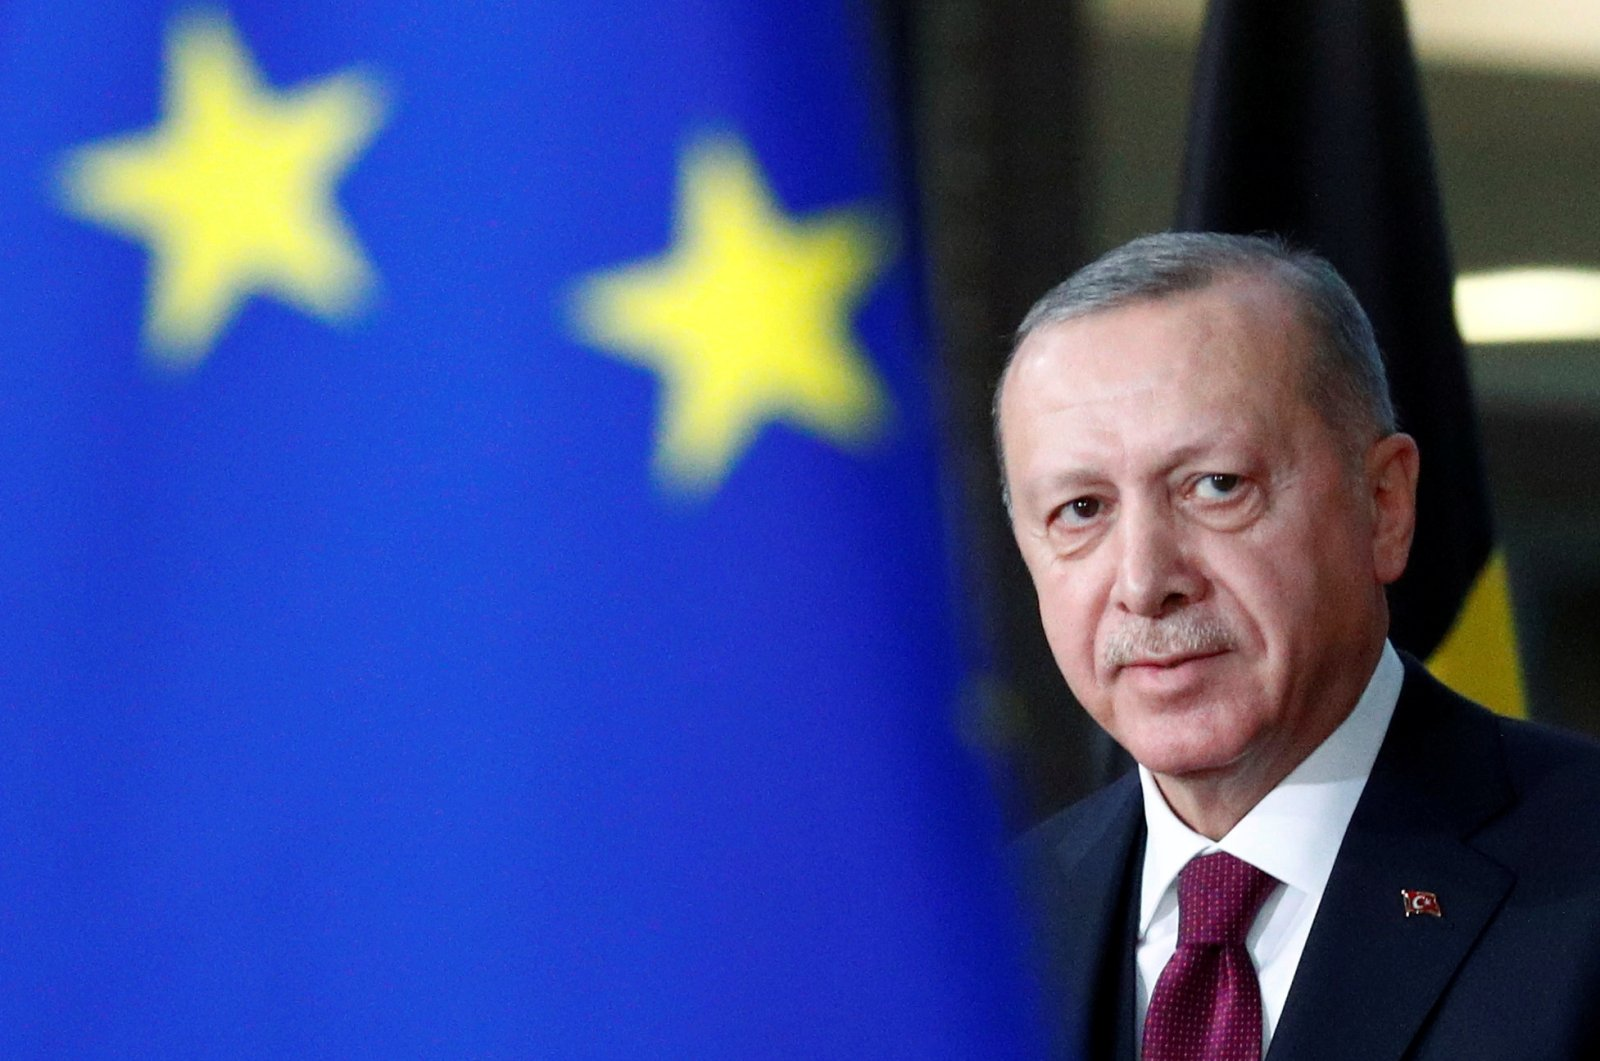 President Recep Tayyip Erdoğan arrives for a meeting with European Council President Charles Michel in Brussels, Belgium, March 9, 2020. (Reuters Photo)